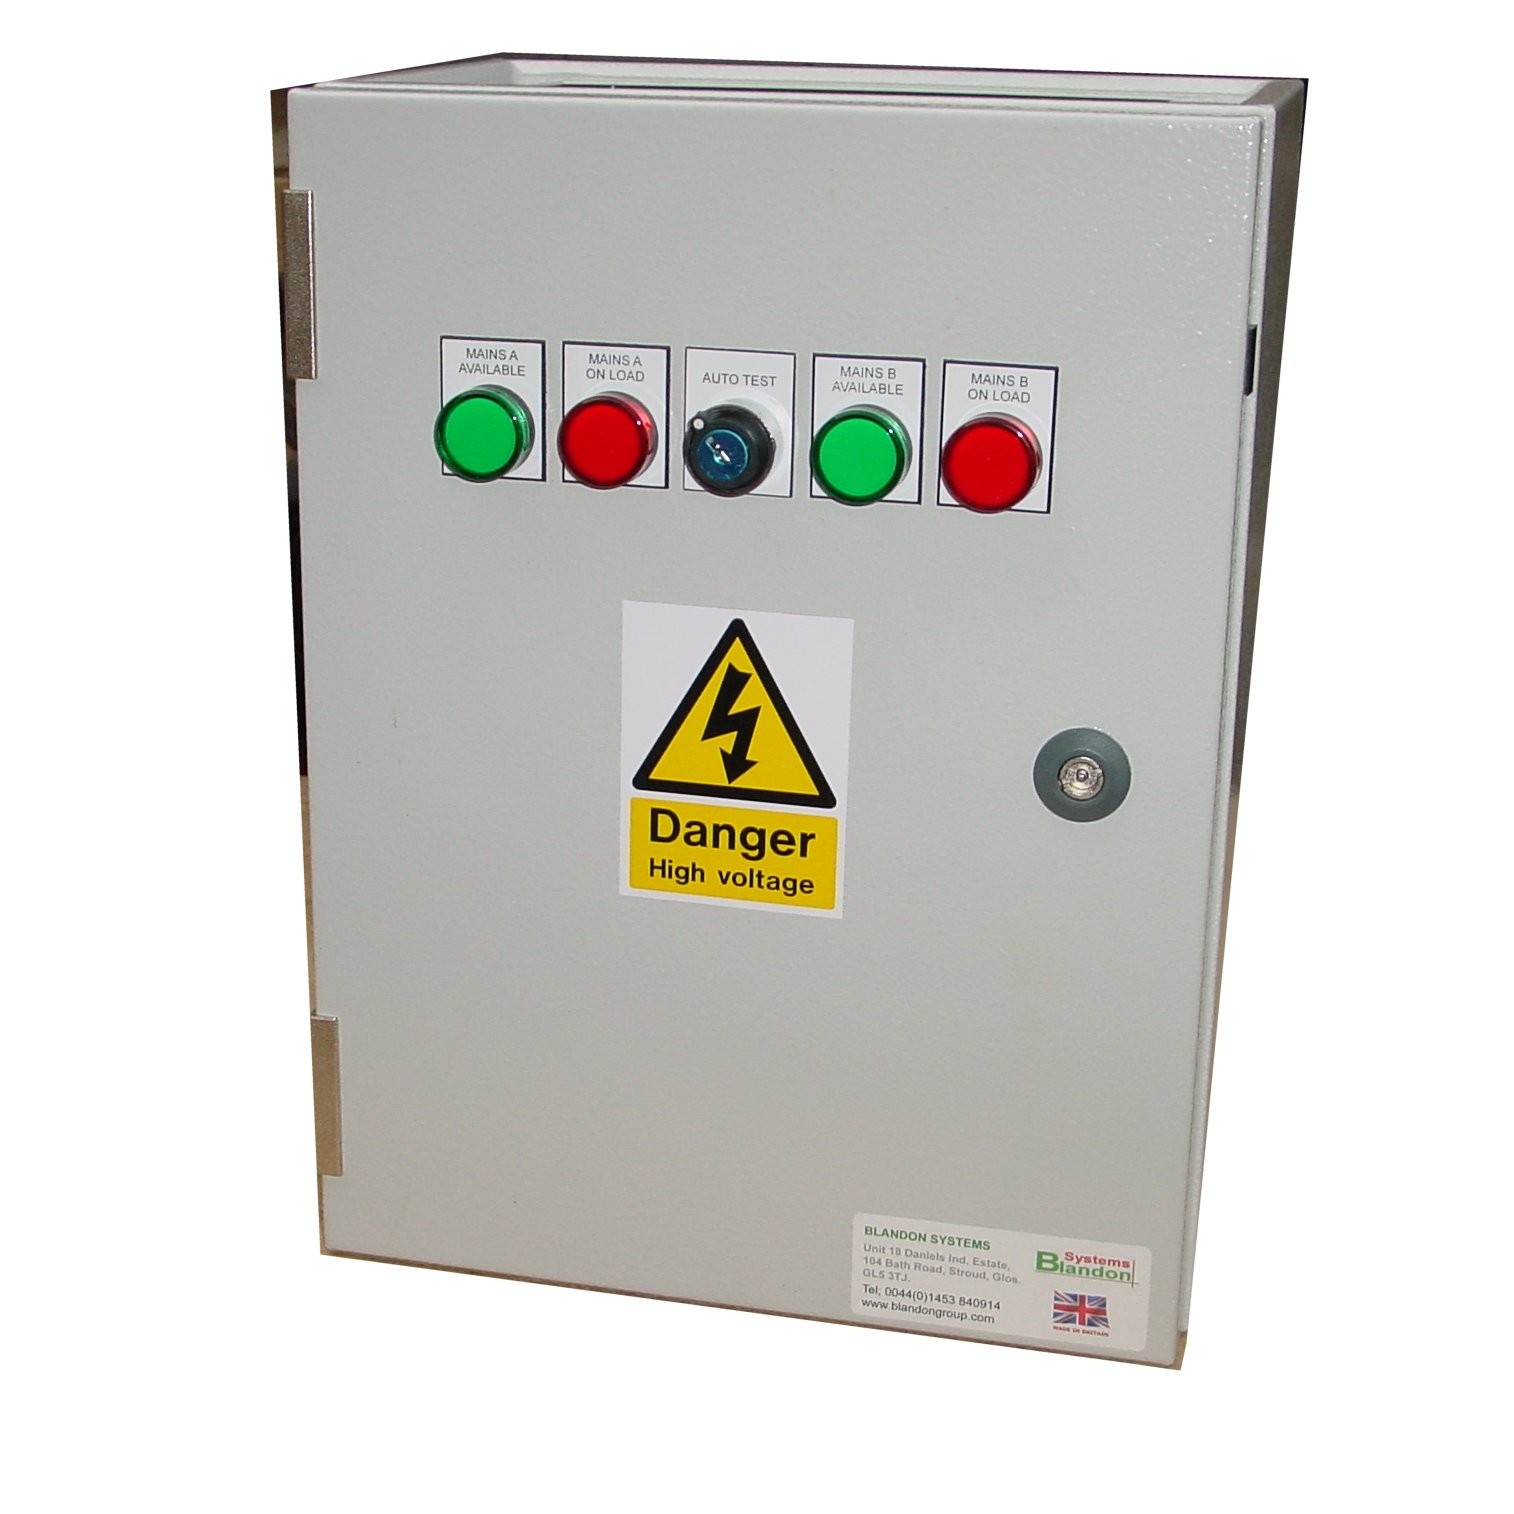 100A ATS 3 Phase Mains-Mains 400V, UVR Controlled, ICG Contactors